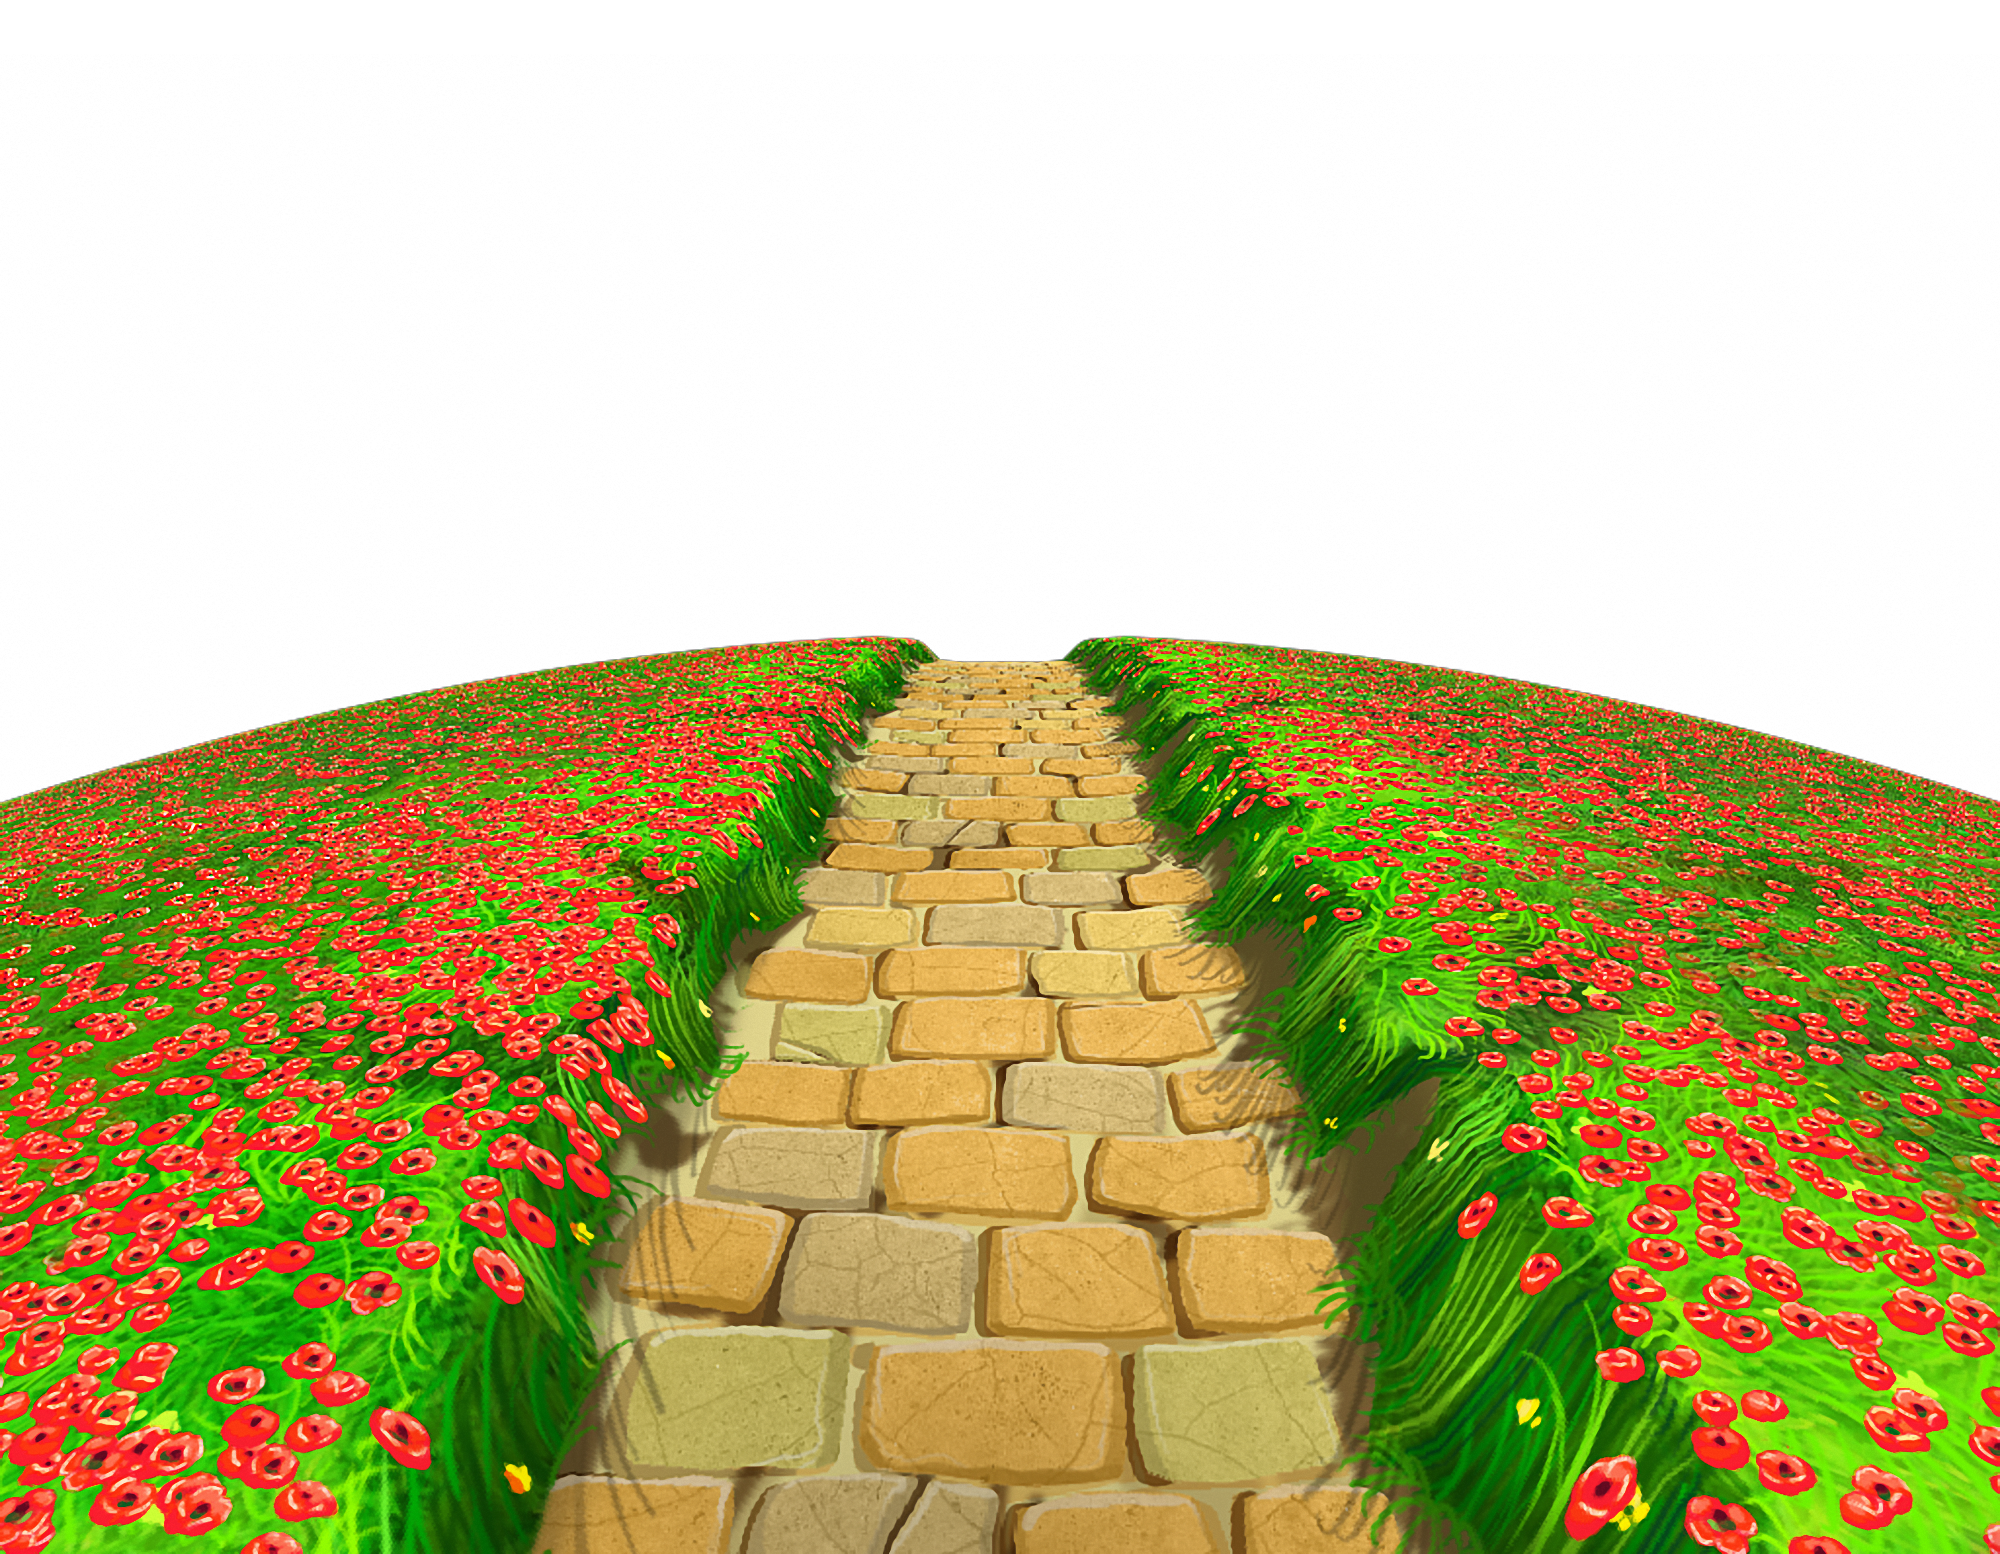 Goals clipart path. Stone with flowers ground